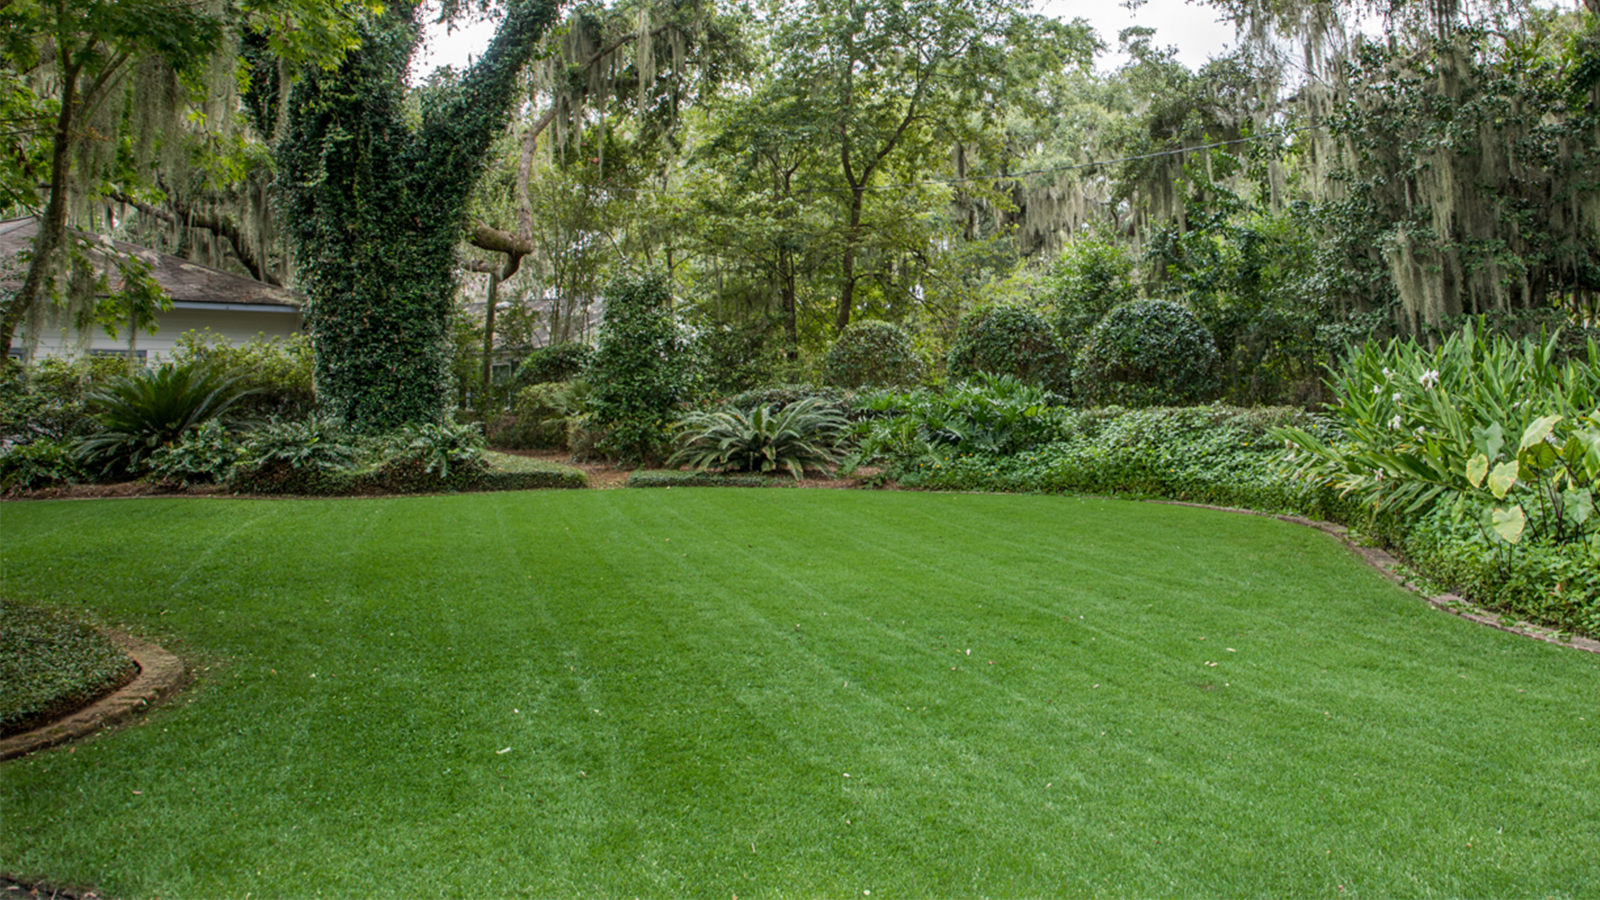 Lawn Maintenance Services in South Carolina 4